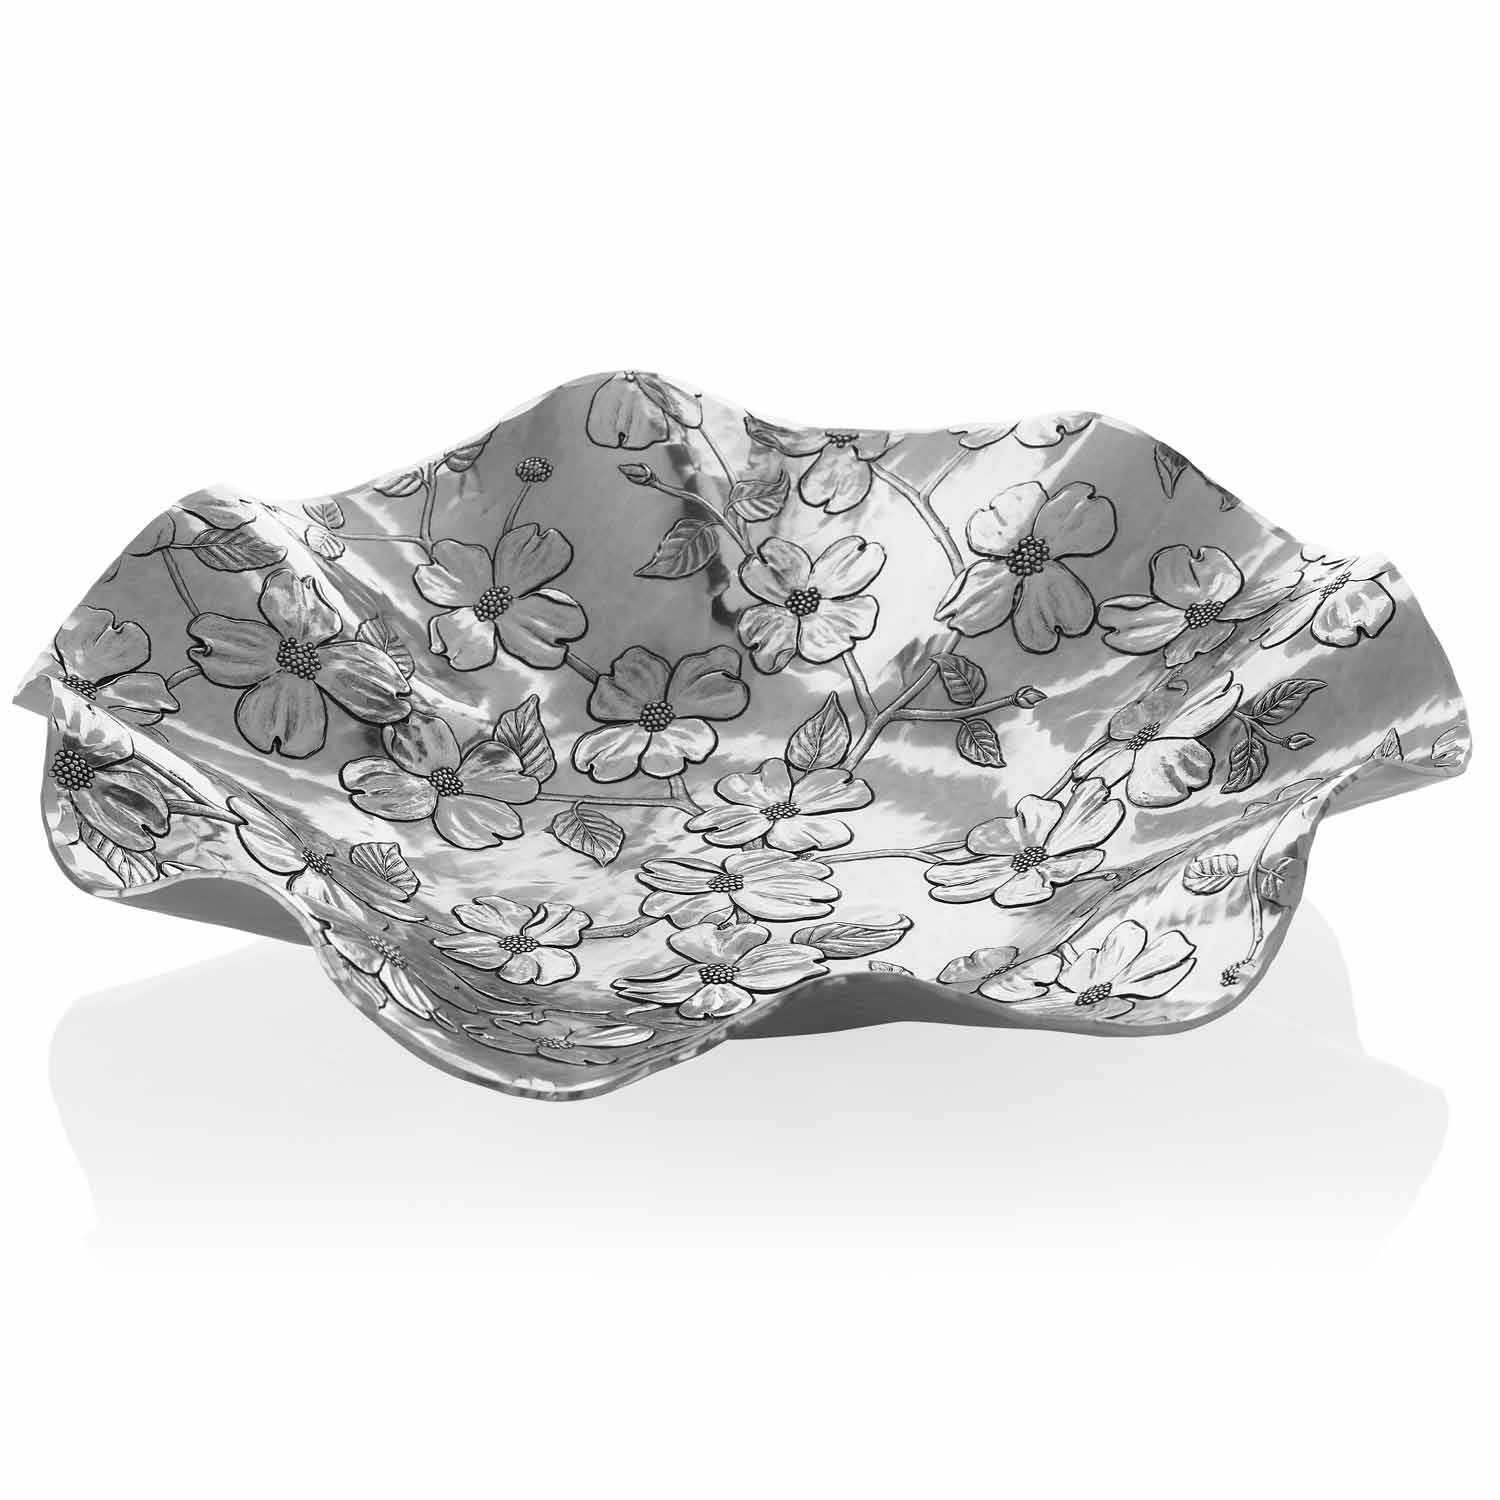 Wendell August Forge Dogwood St. Helena Bowl, Silver